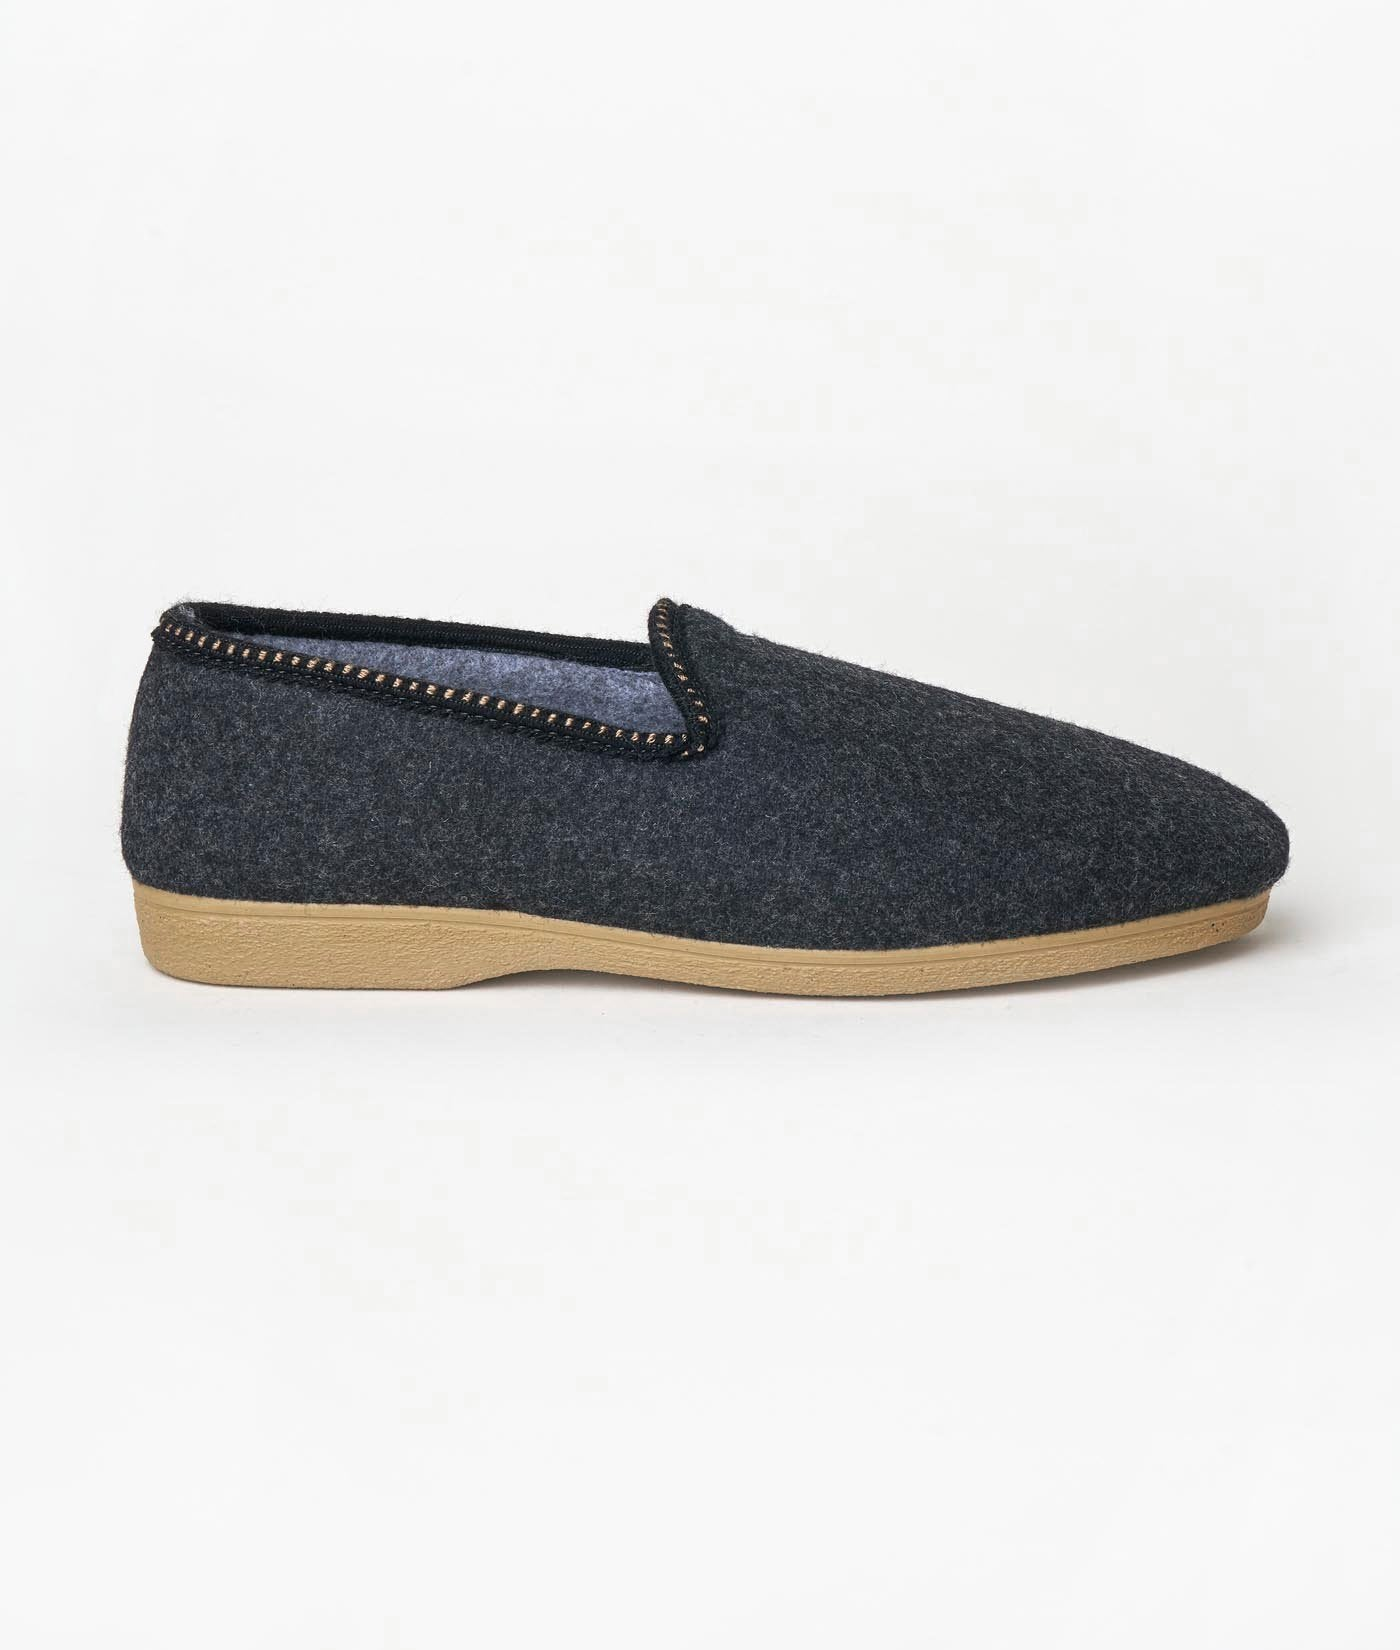 Industry of All Nations Cabrales Felted Wool Sustainable Slippers  Charcoal